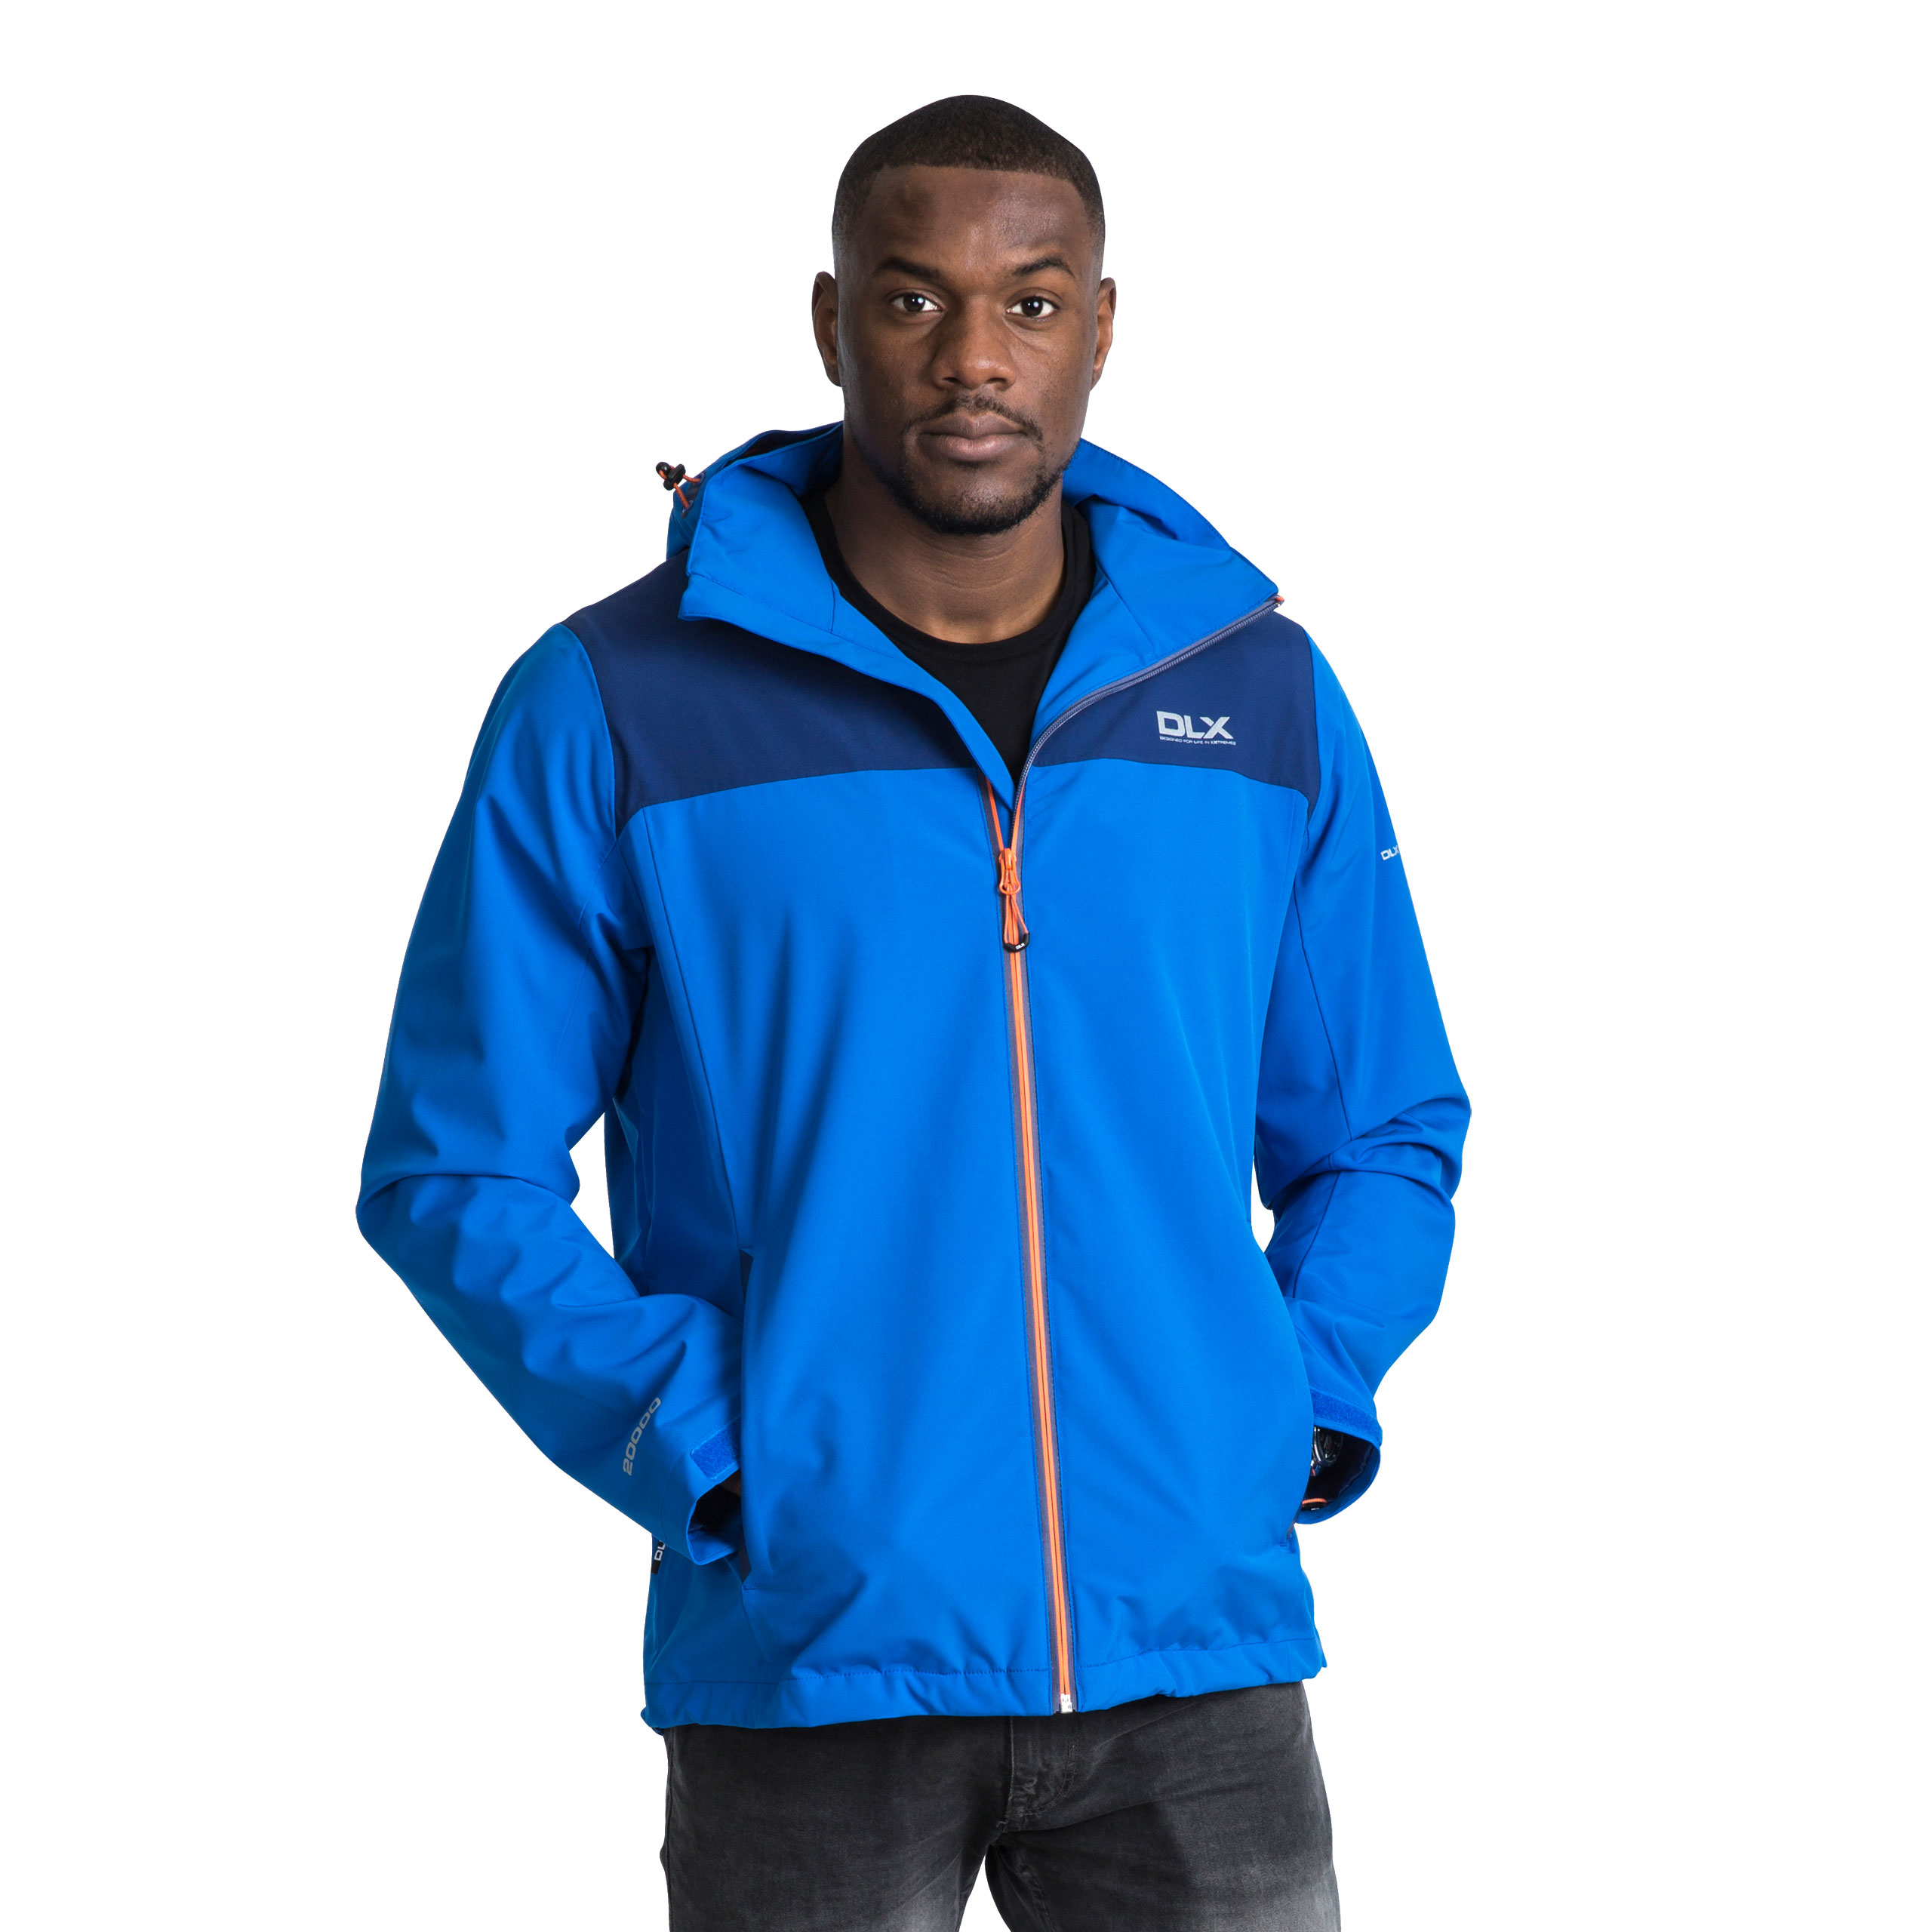 DLX-Ginsberg-DLX-Mens-Waterproof-Jacket-Hooded-Coat-in-Blue-and-Grey thumbnail 14